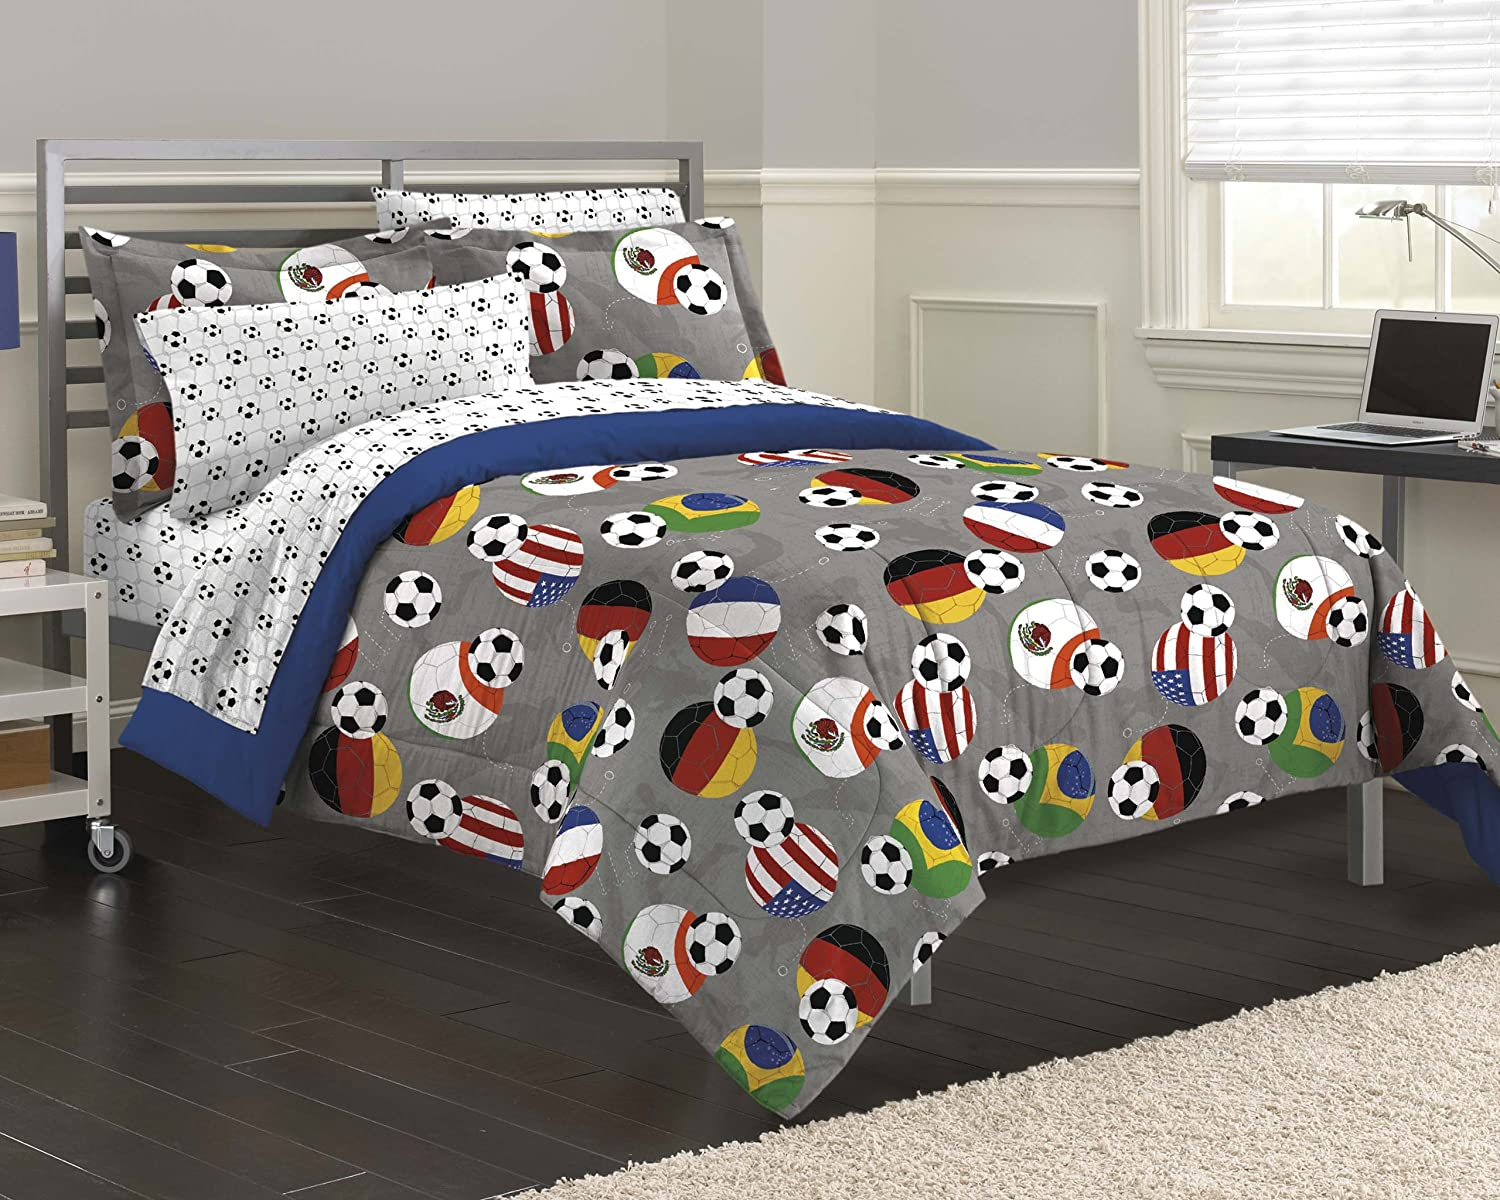 My Room Soccer Fever Teen Bedding Comforter Set, Gray, Queen